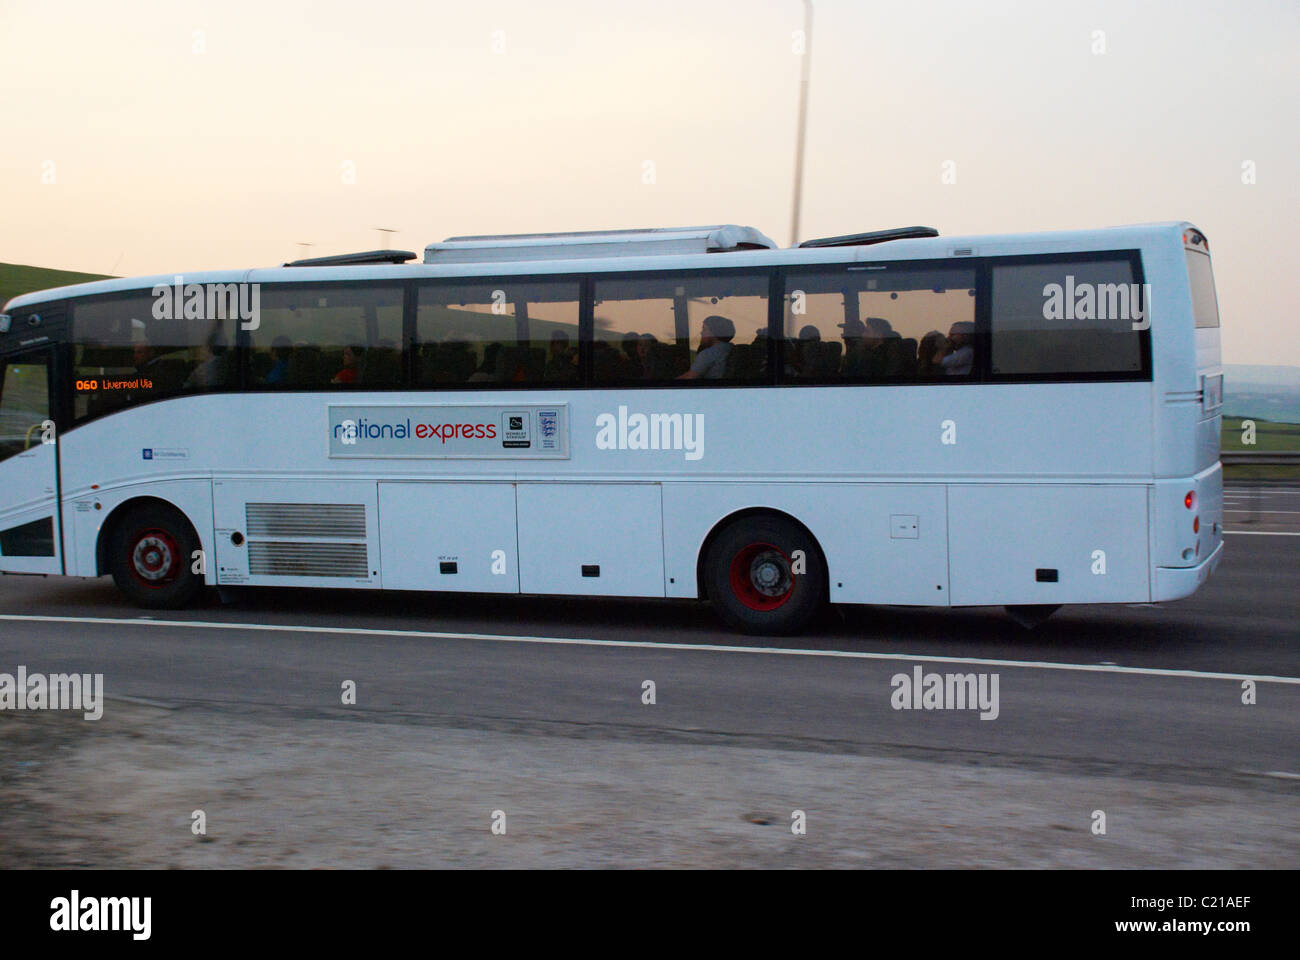 White coach on the M62 motorway (near Huddersfield). - Stock Image